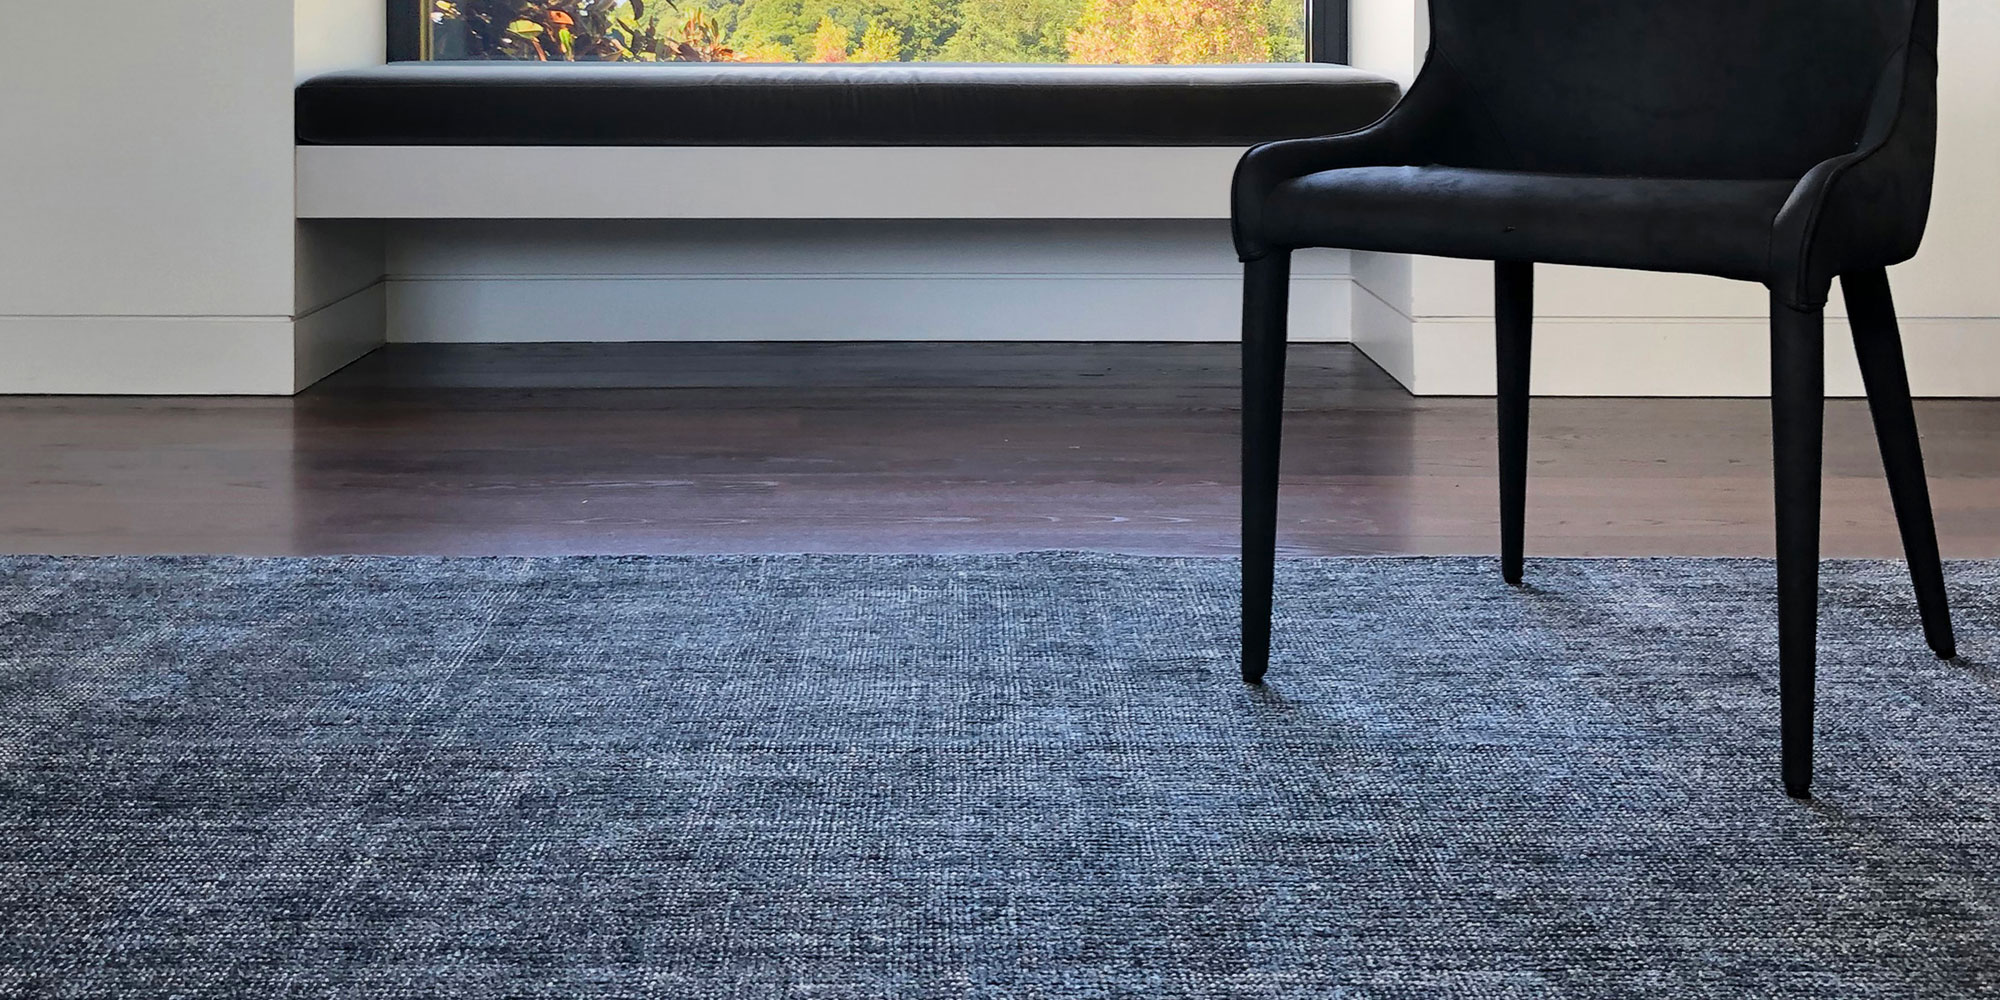 Minimalist Style - How to place Rugs